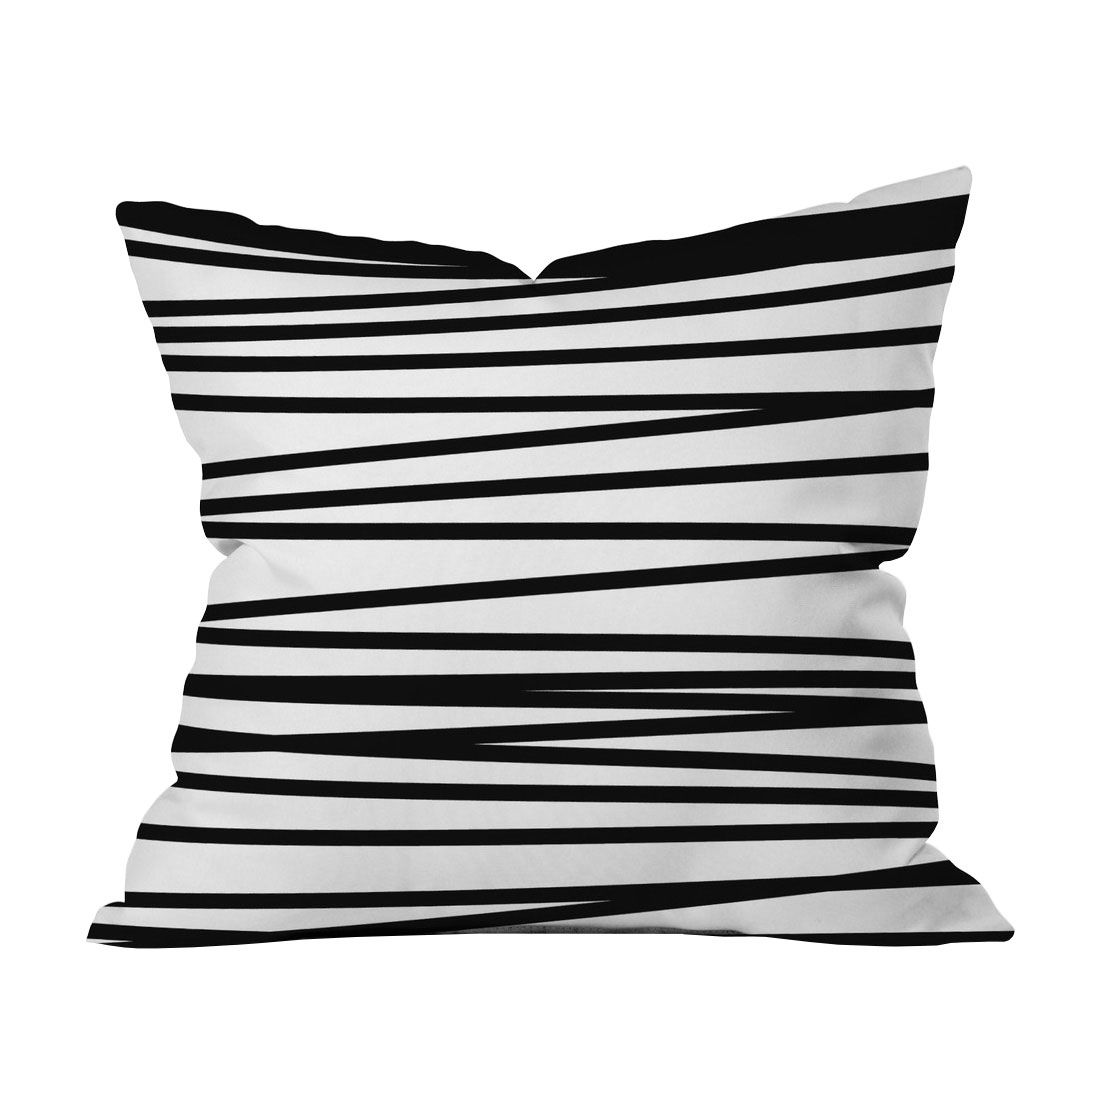 Luminescence Metallic Zebra Oversize Square Throw Pillow White Mina Victory In 2020 Throw Pillows Throw Pillows White Modern Throw Pillows